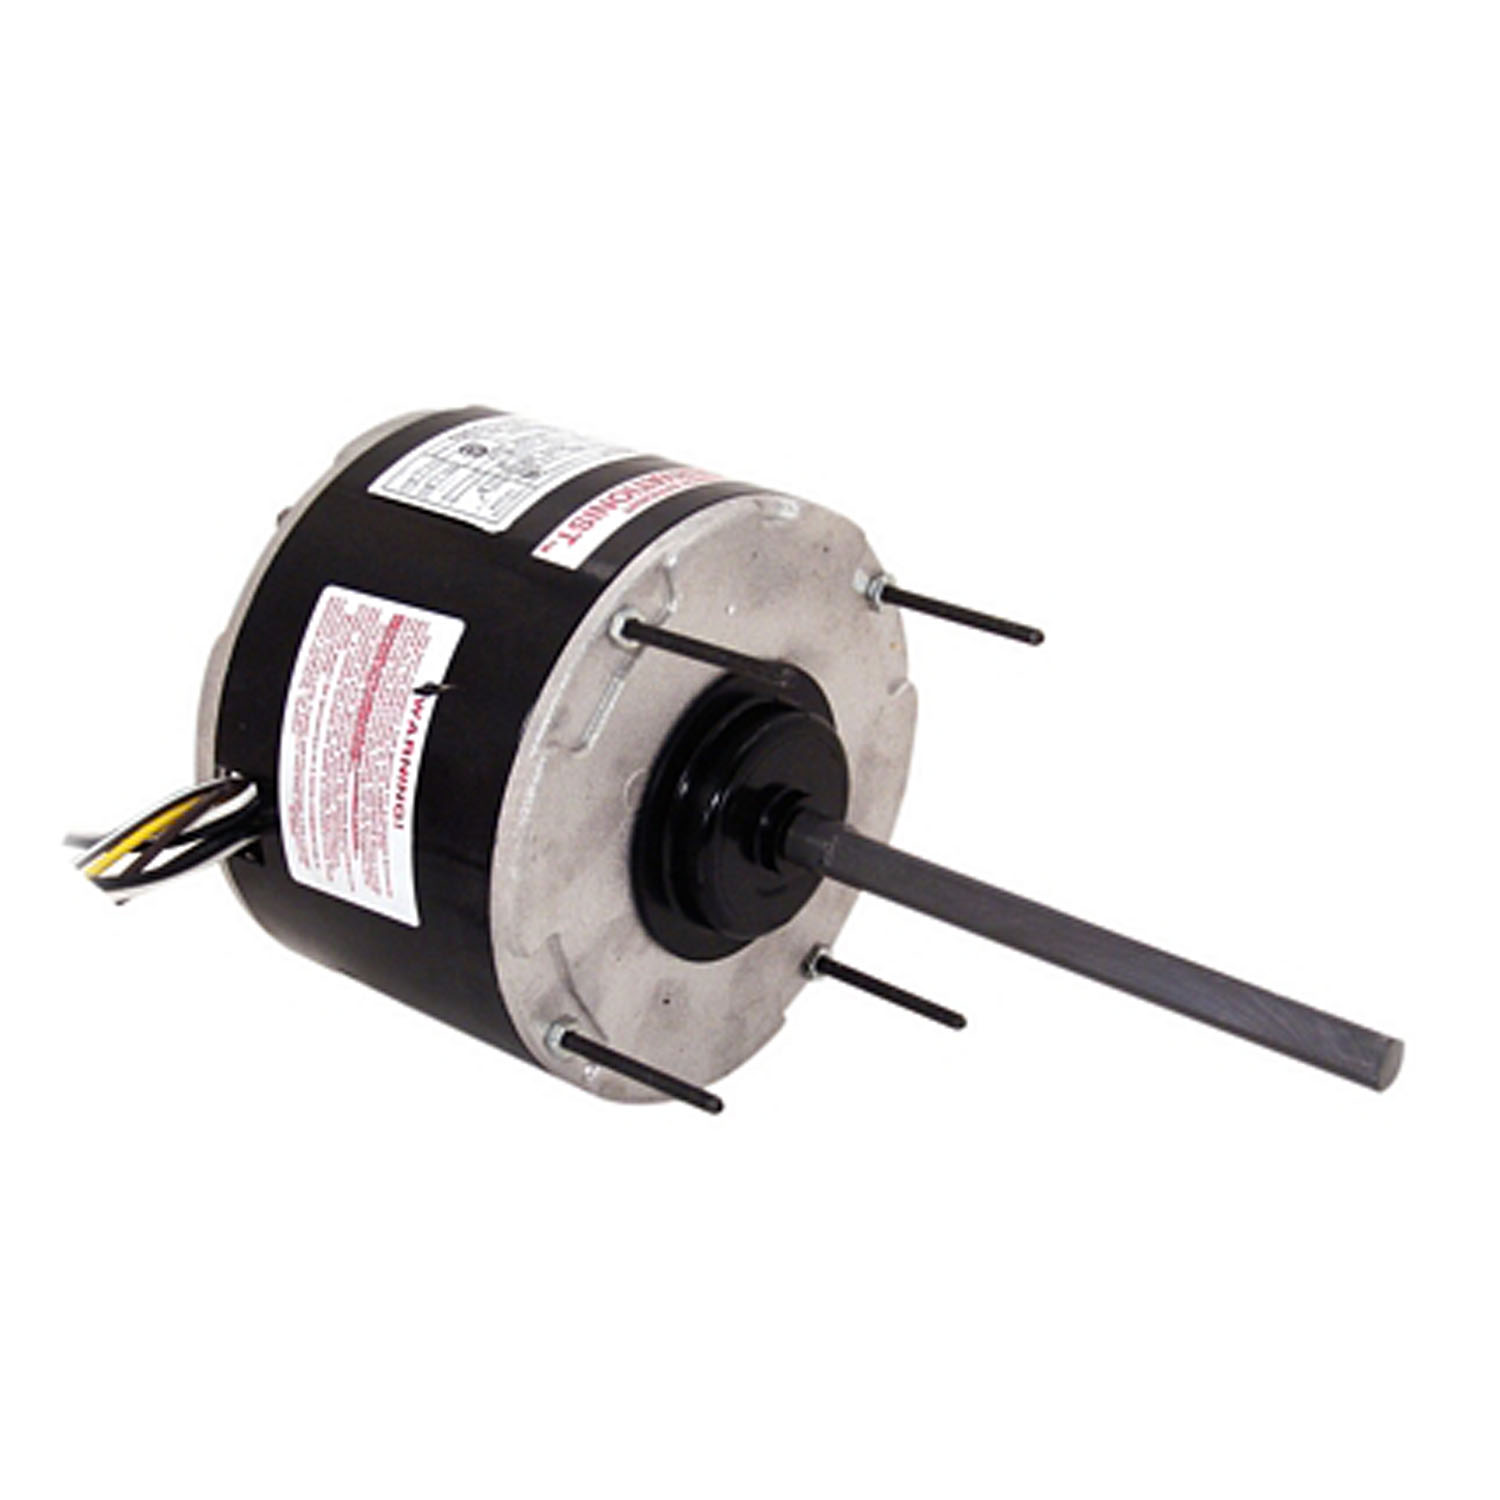 5 5/8 In Dia Outdoor Sleeve Bearing Fan Motor 208-230 Volts 825 RPM 1/3 HP